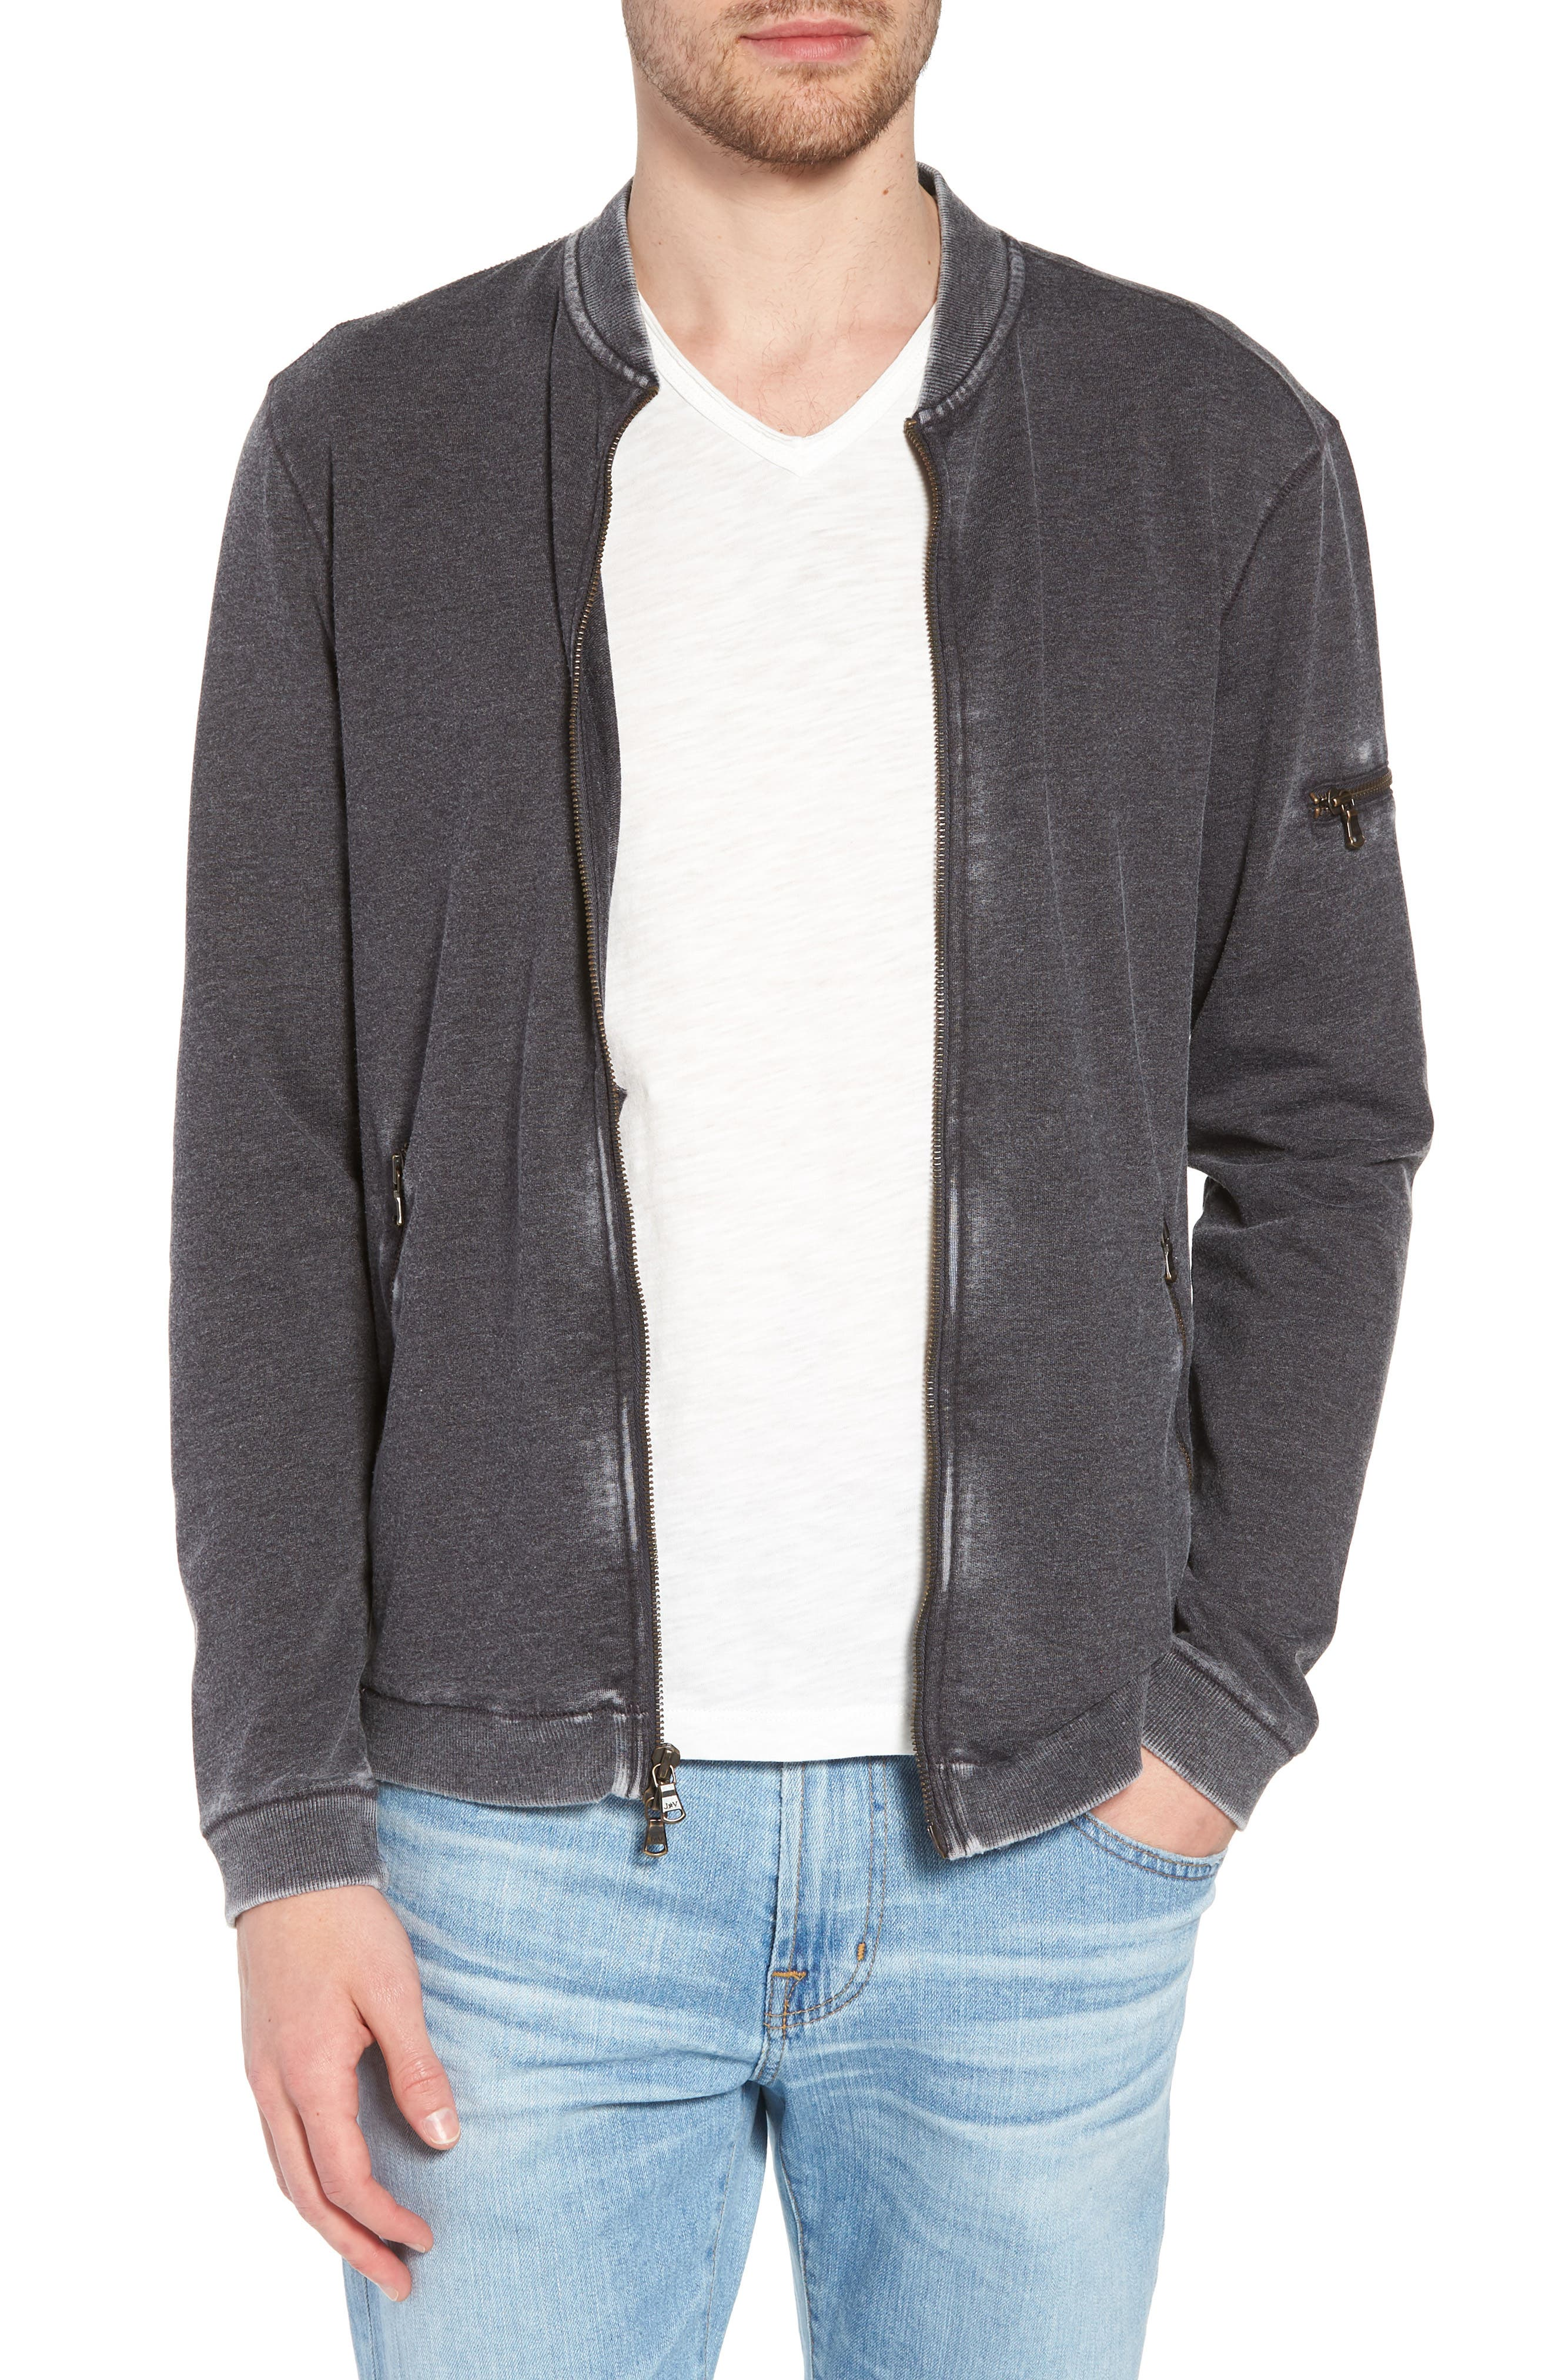 Burnout French Terry Zip Sweater,                             Main thumbnail 1, color,                             032